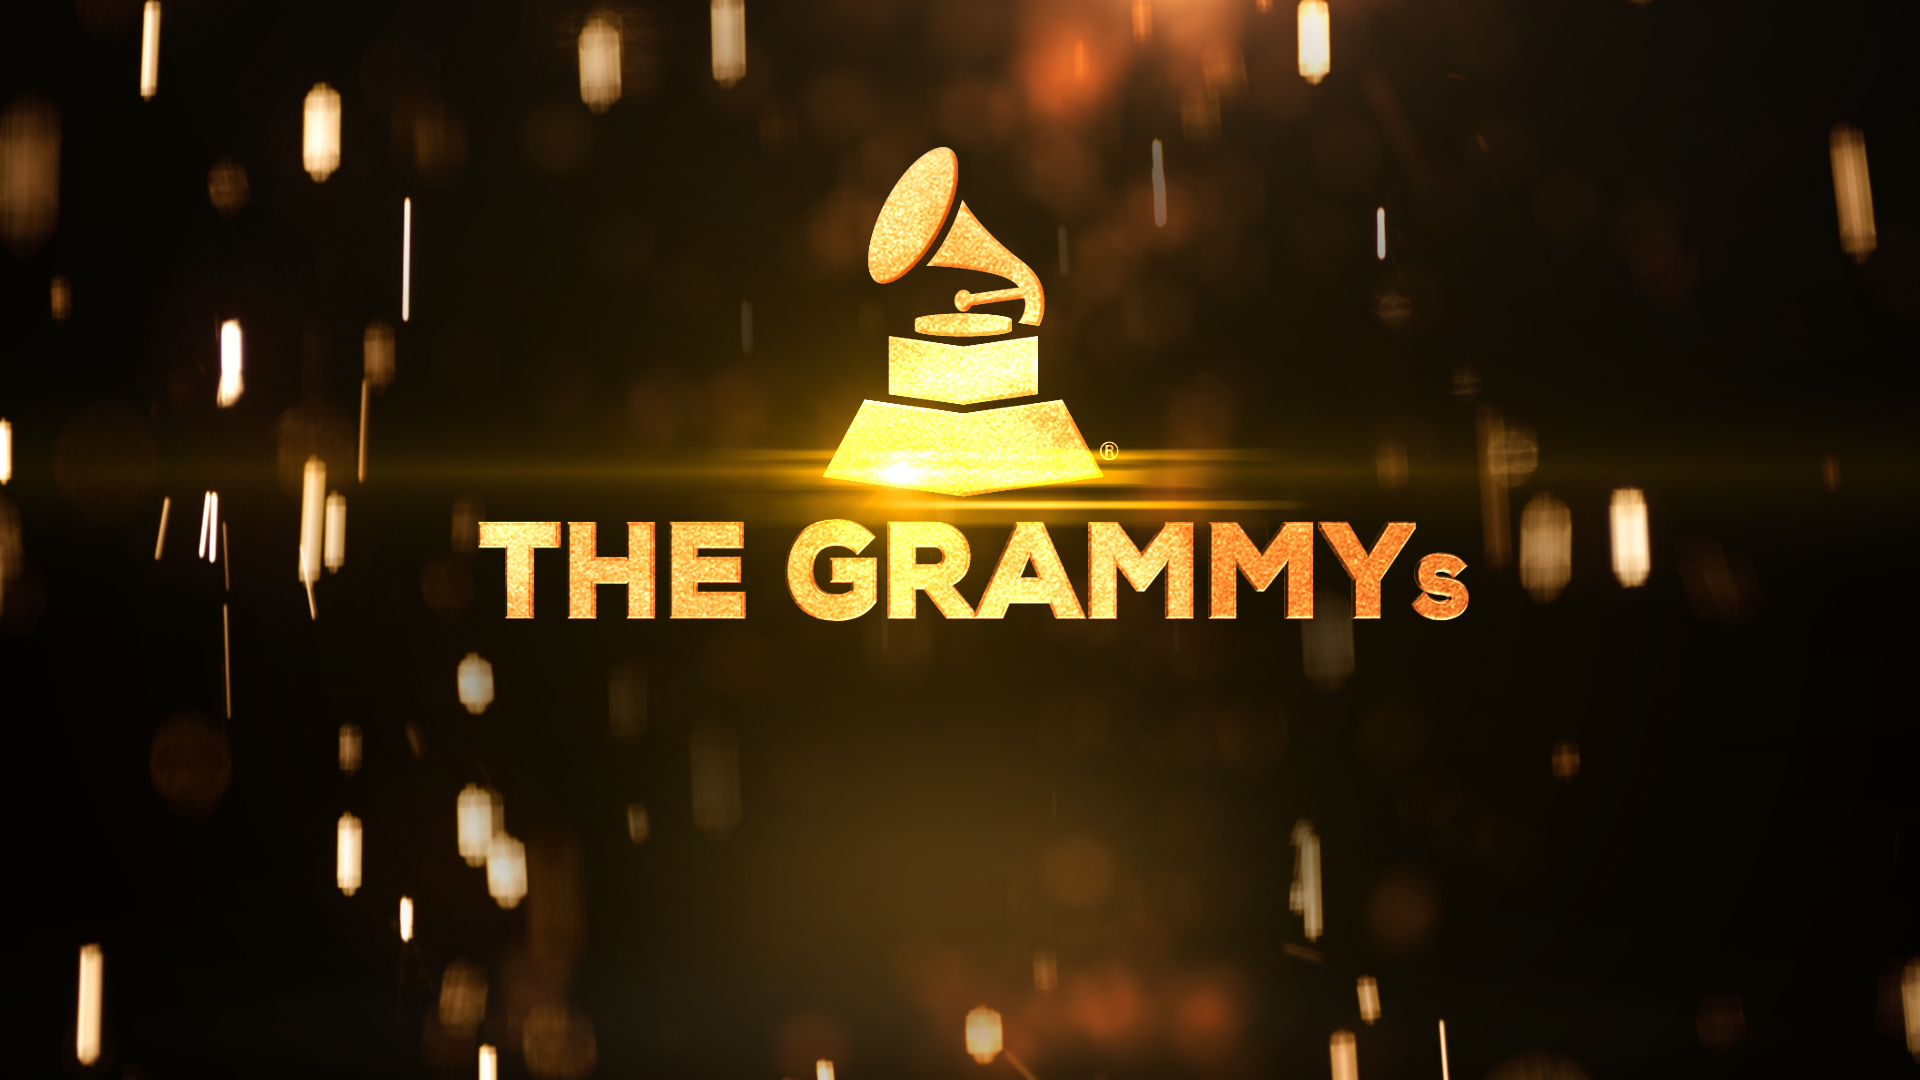 YoungArts vs The Grammys 2017 1920x1080